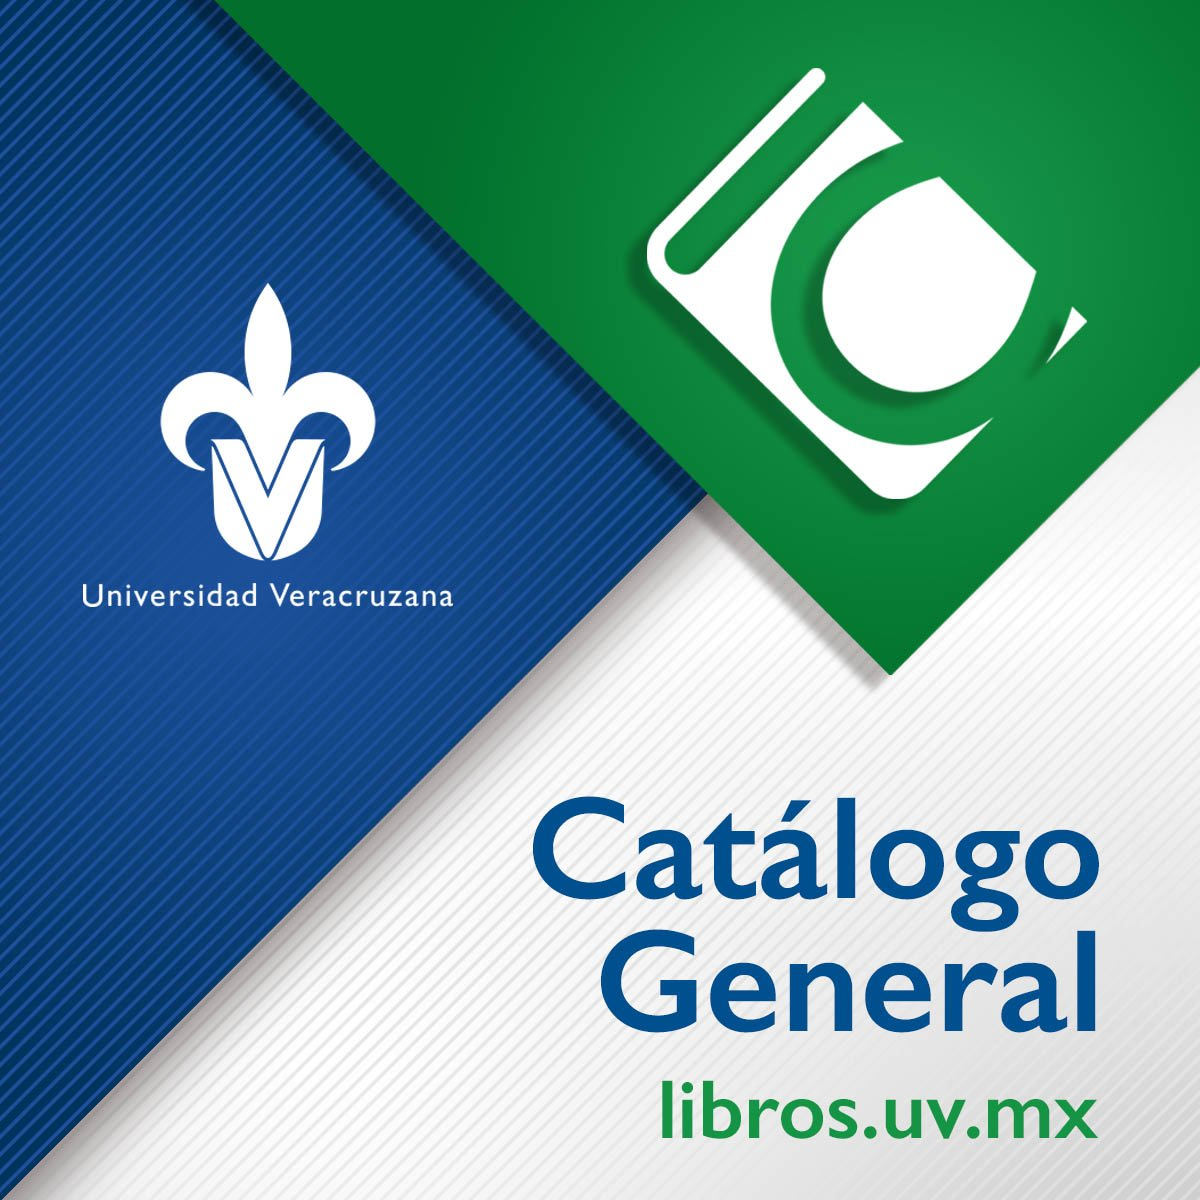 Descarga Gratuita De Libros Editorial Uv On Twitter